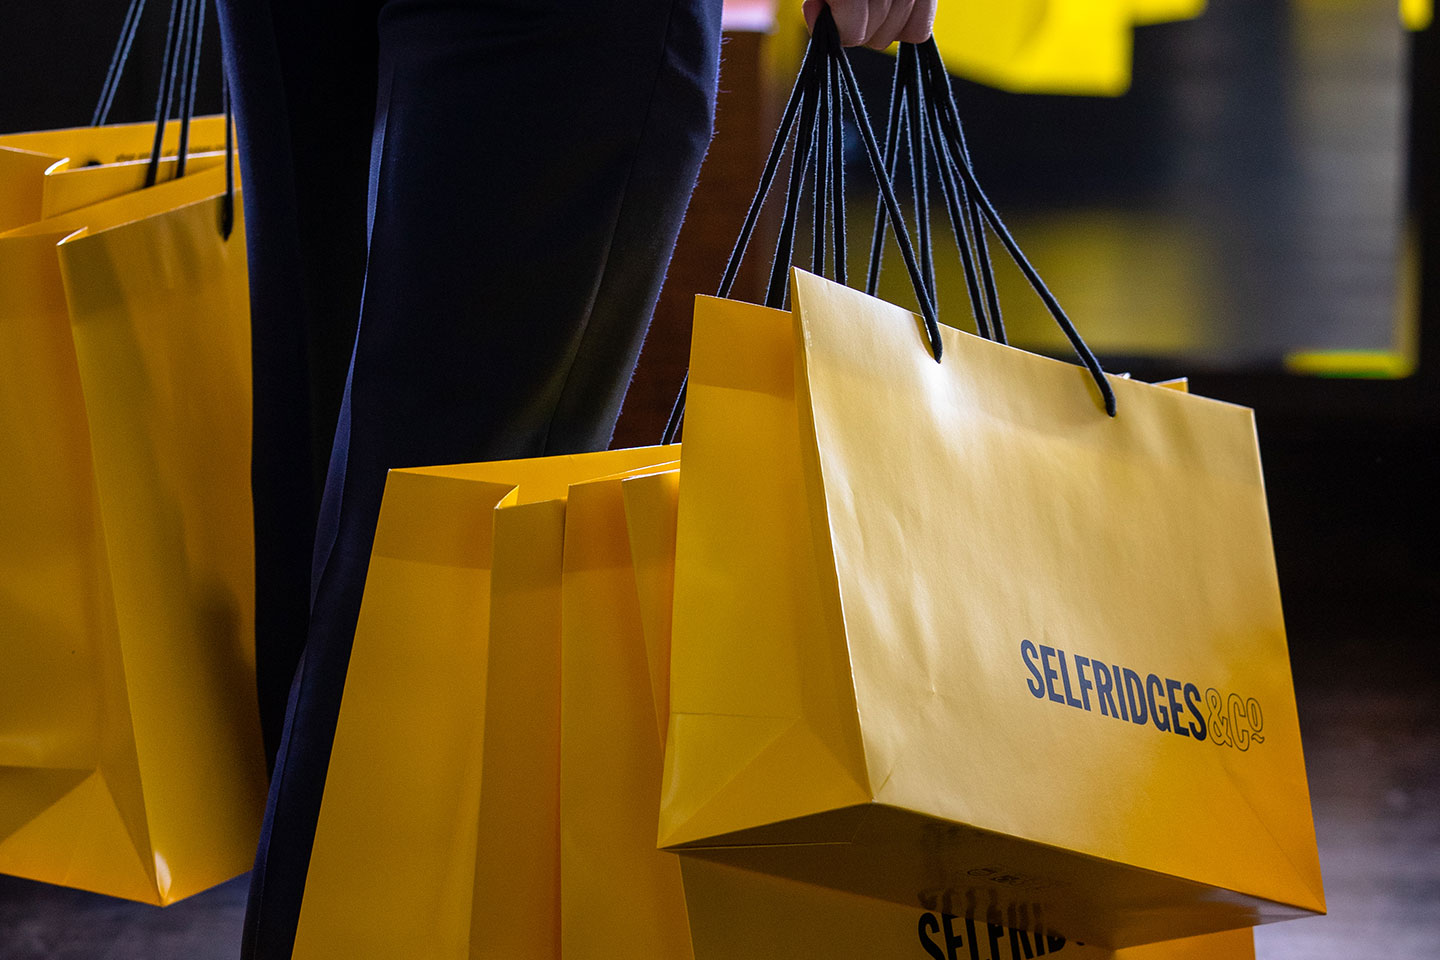 selfridges shopping bags